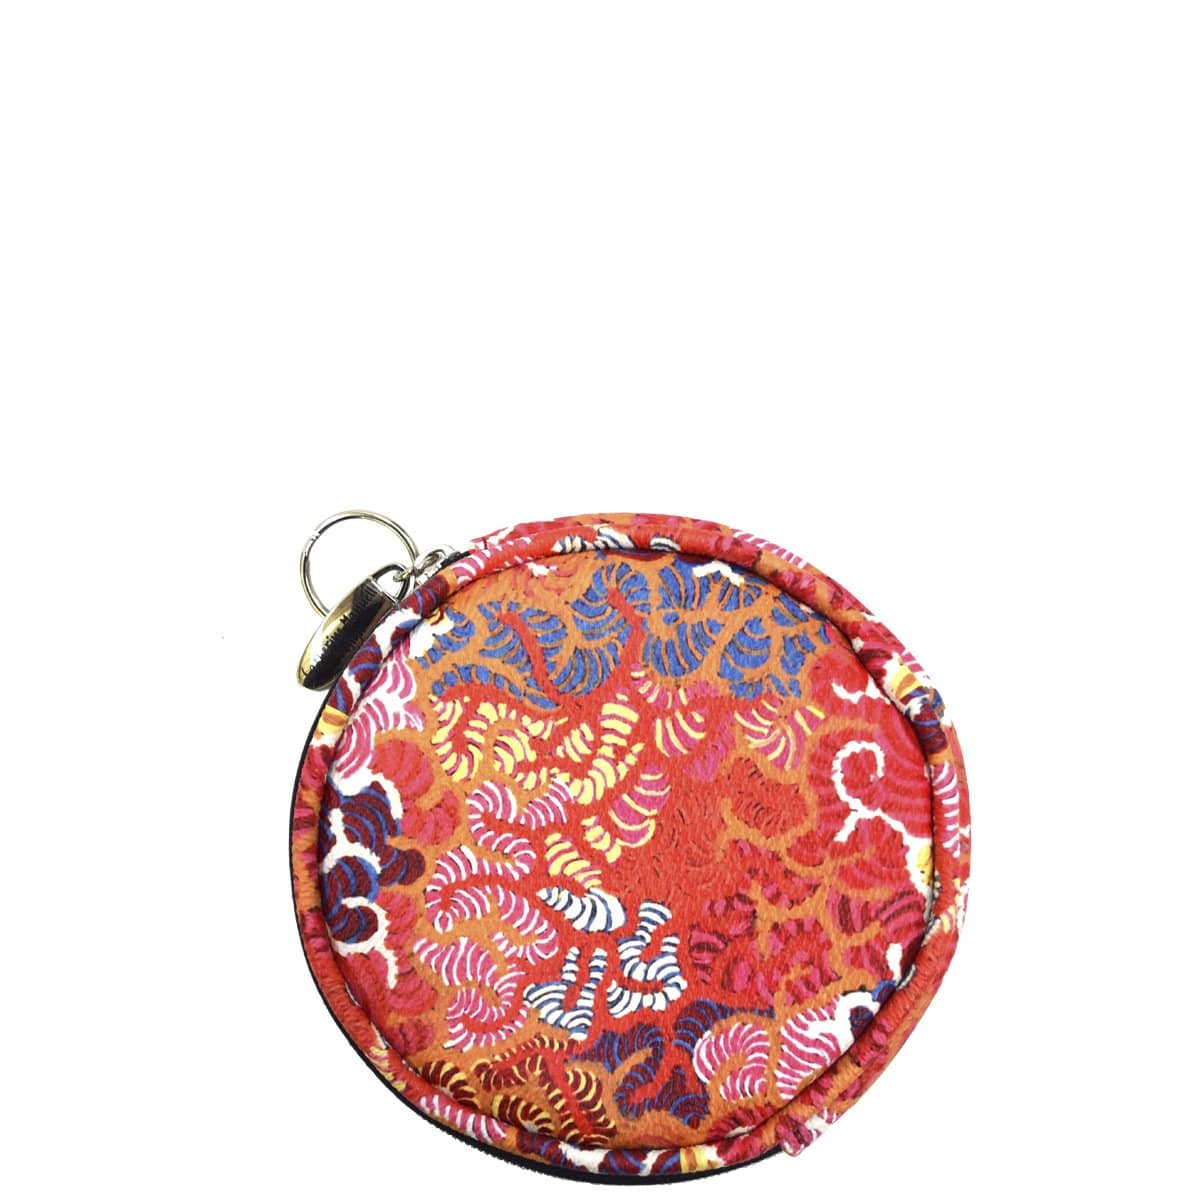 Full Moon Coin Purse AAP - Tali Sandhills